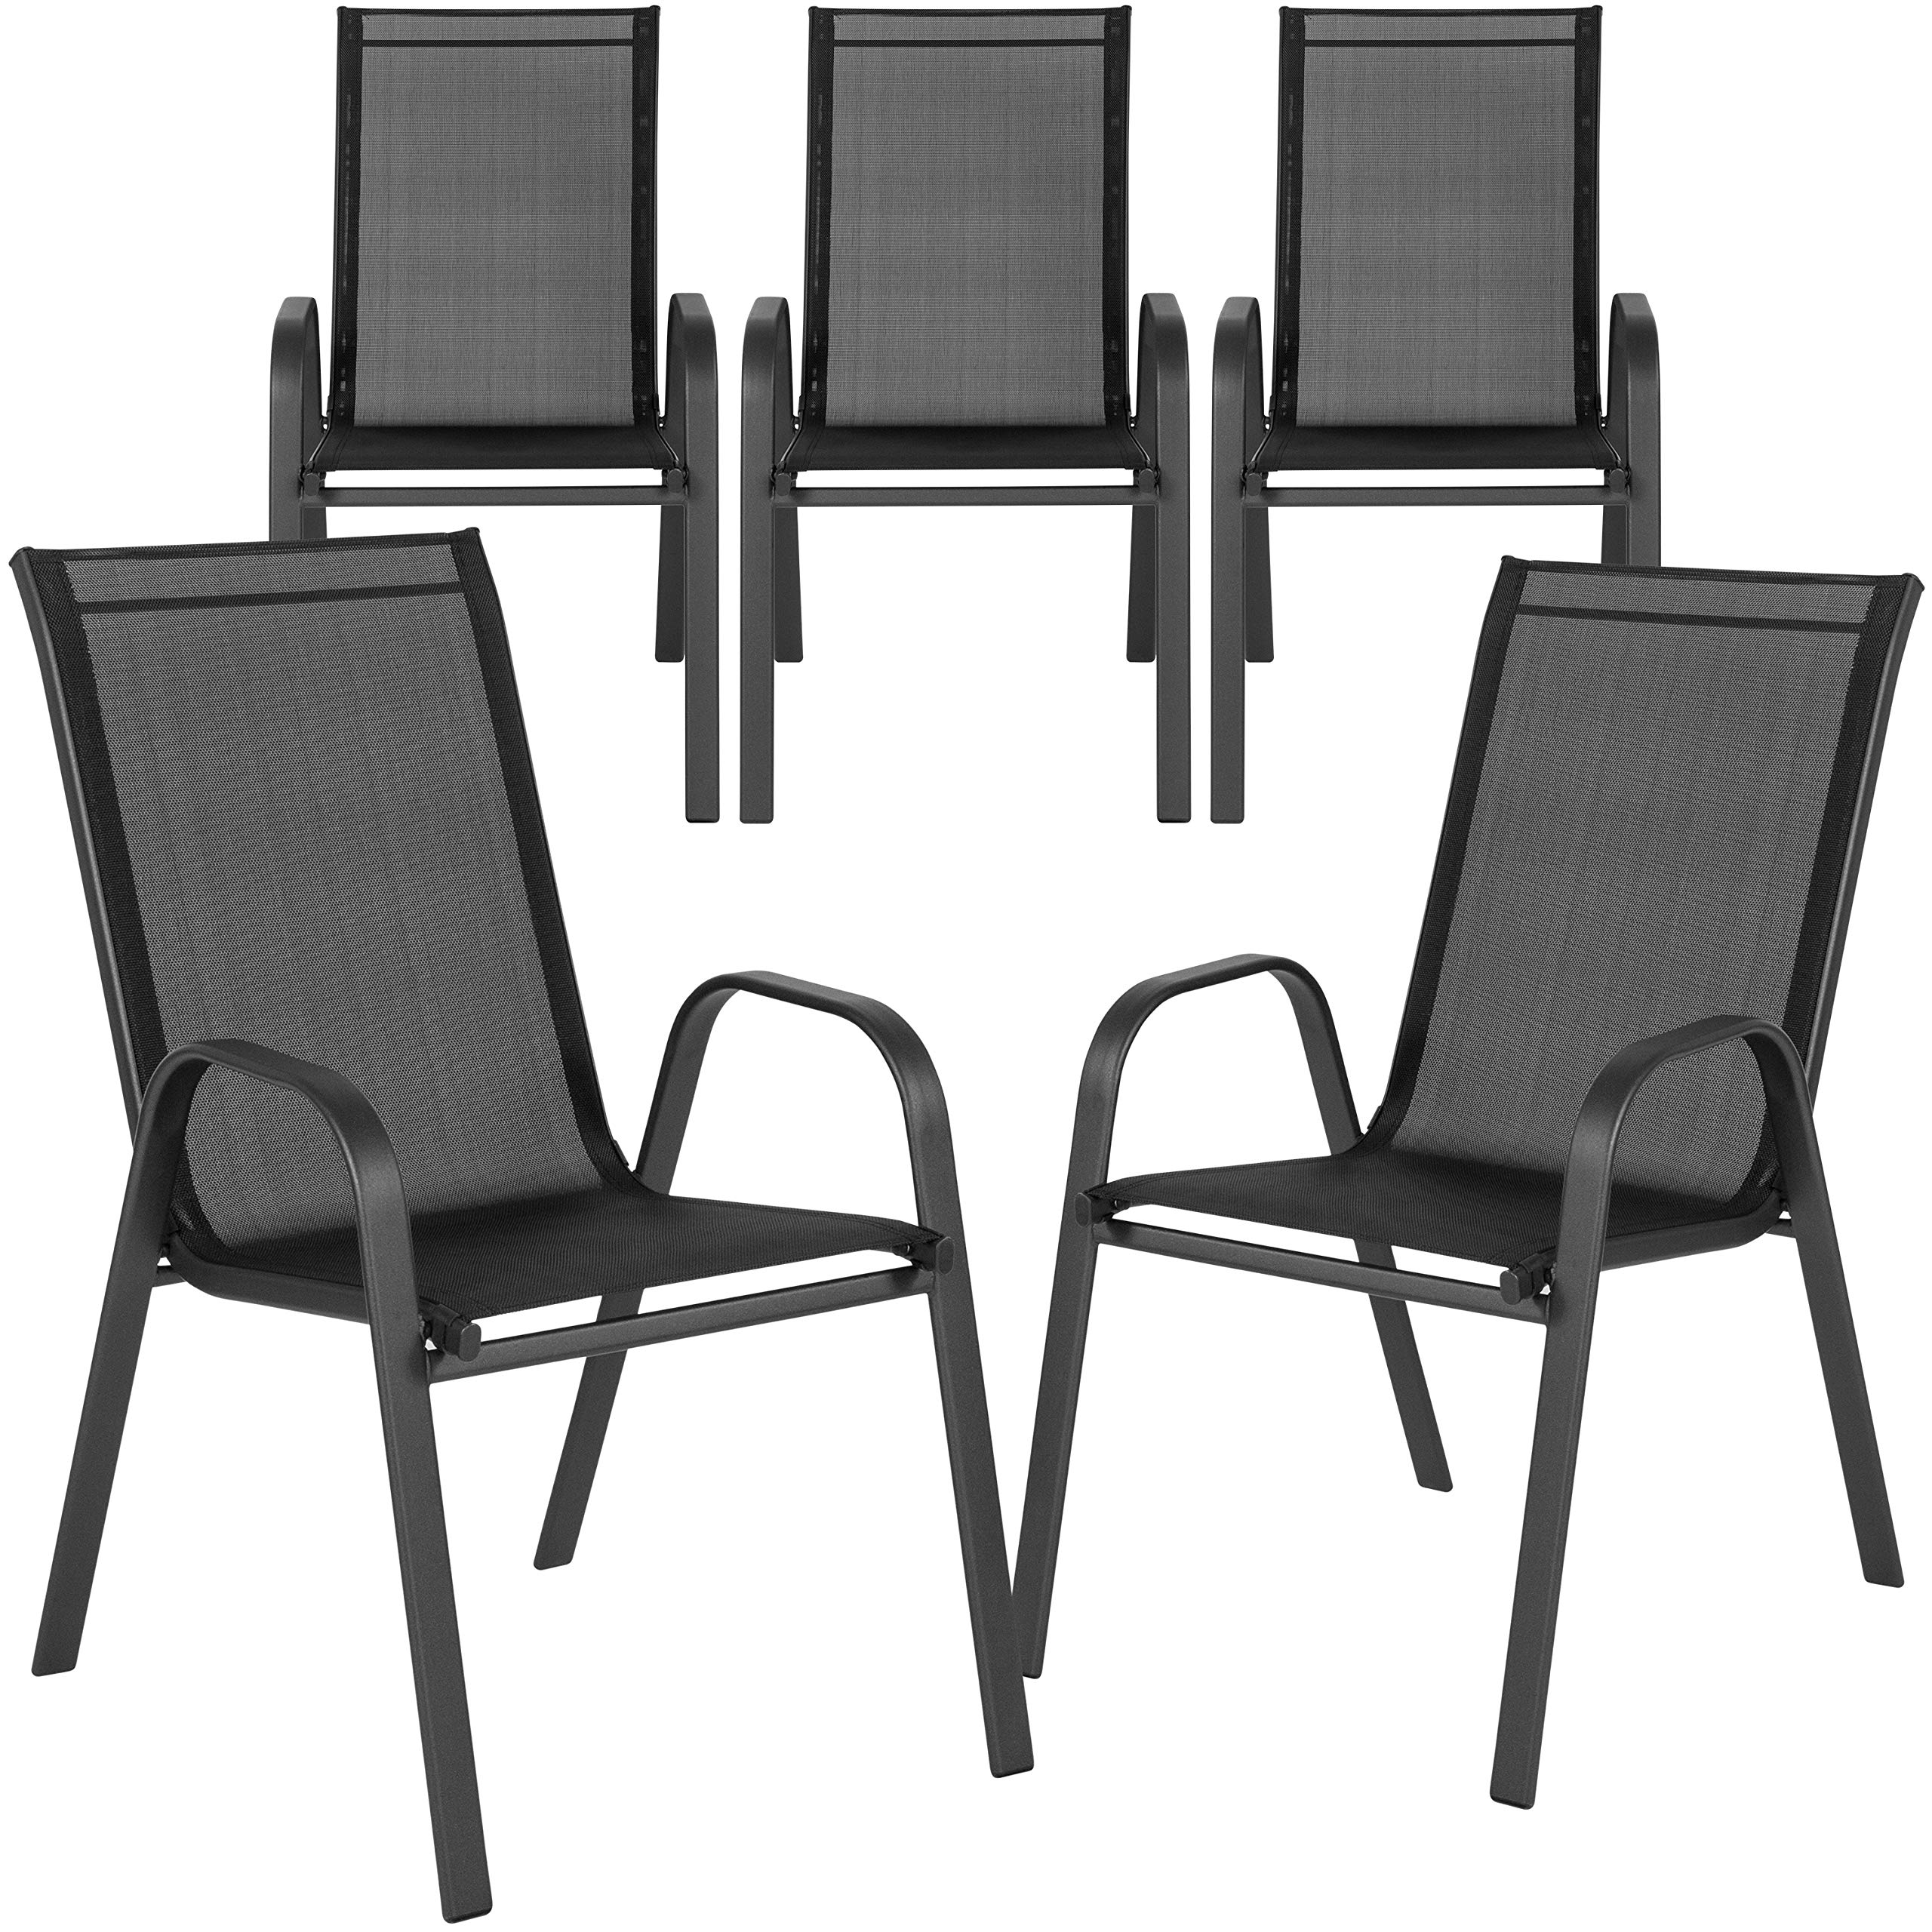 Flash Furniture 5 Pk. Brazos Series Black Outdoor Stack Chair with Flex Comfort Material and Metal Frame